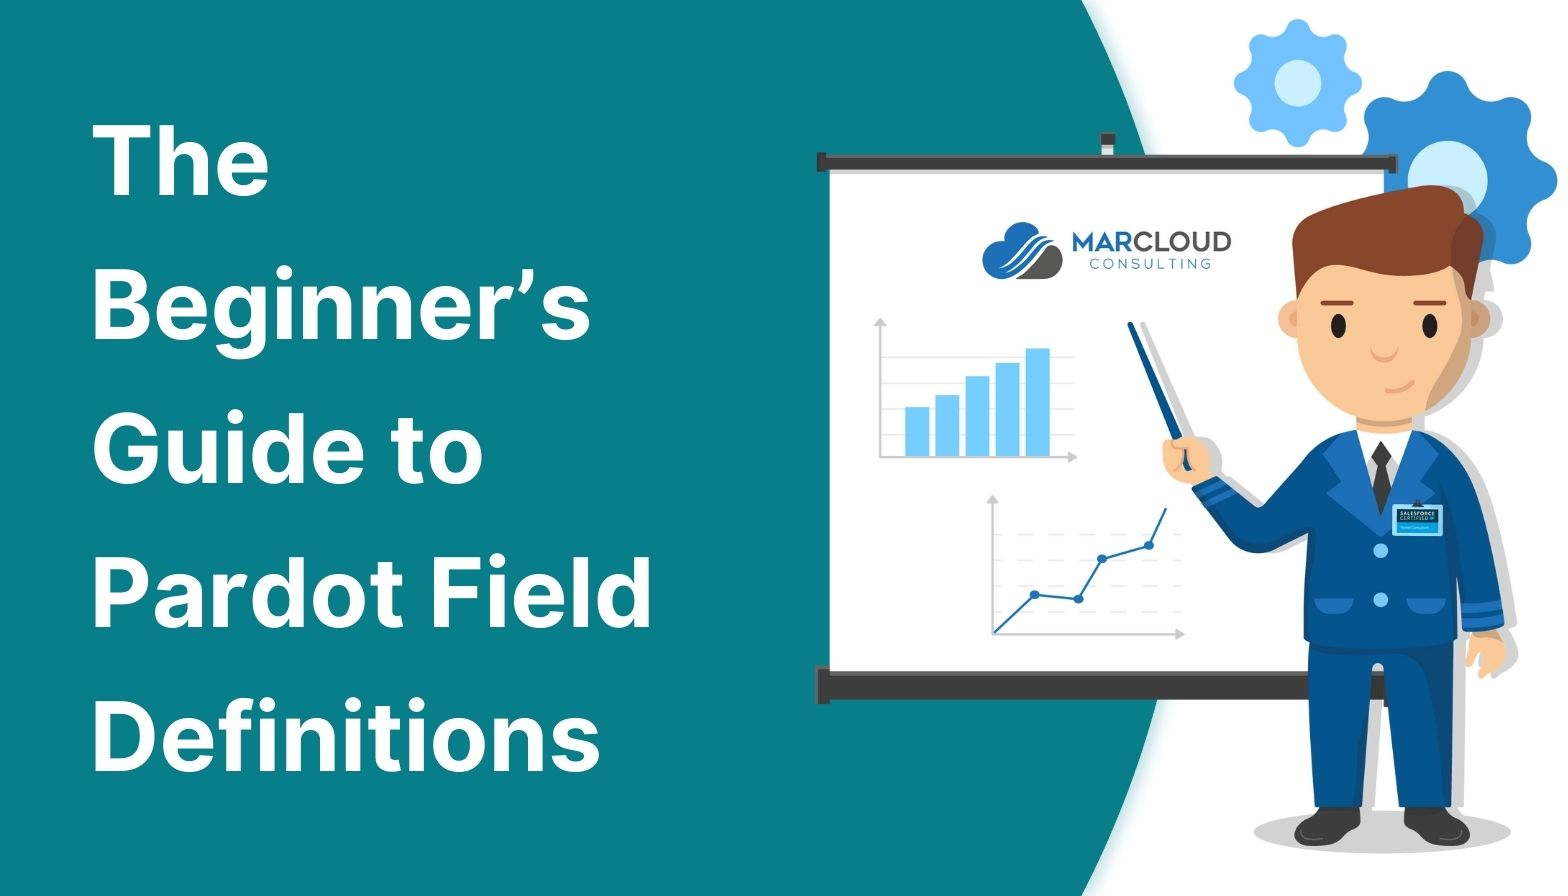 Feature image: The beginner's guide to Pardot field definitions